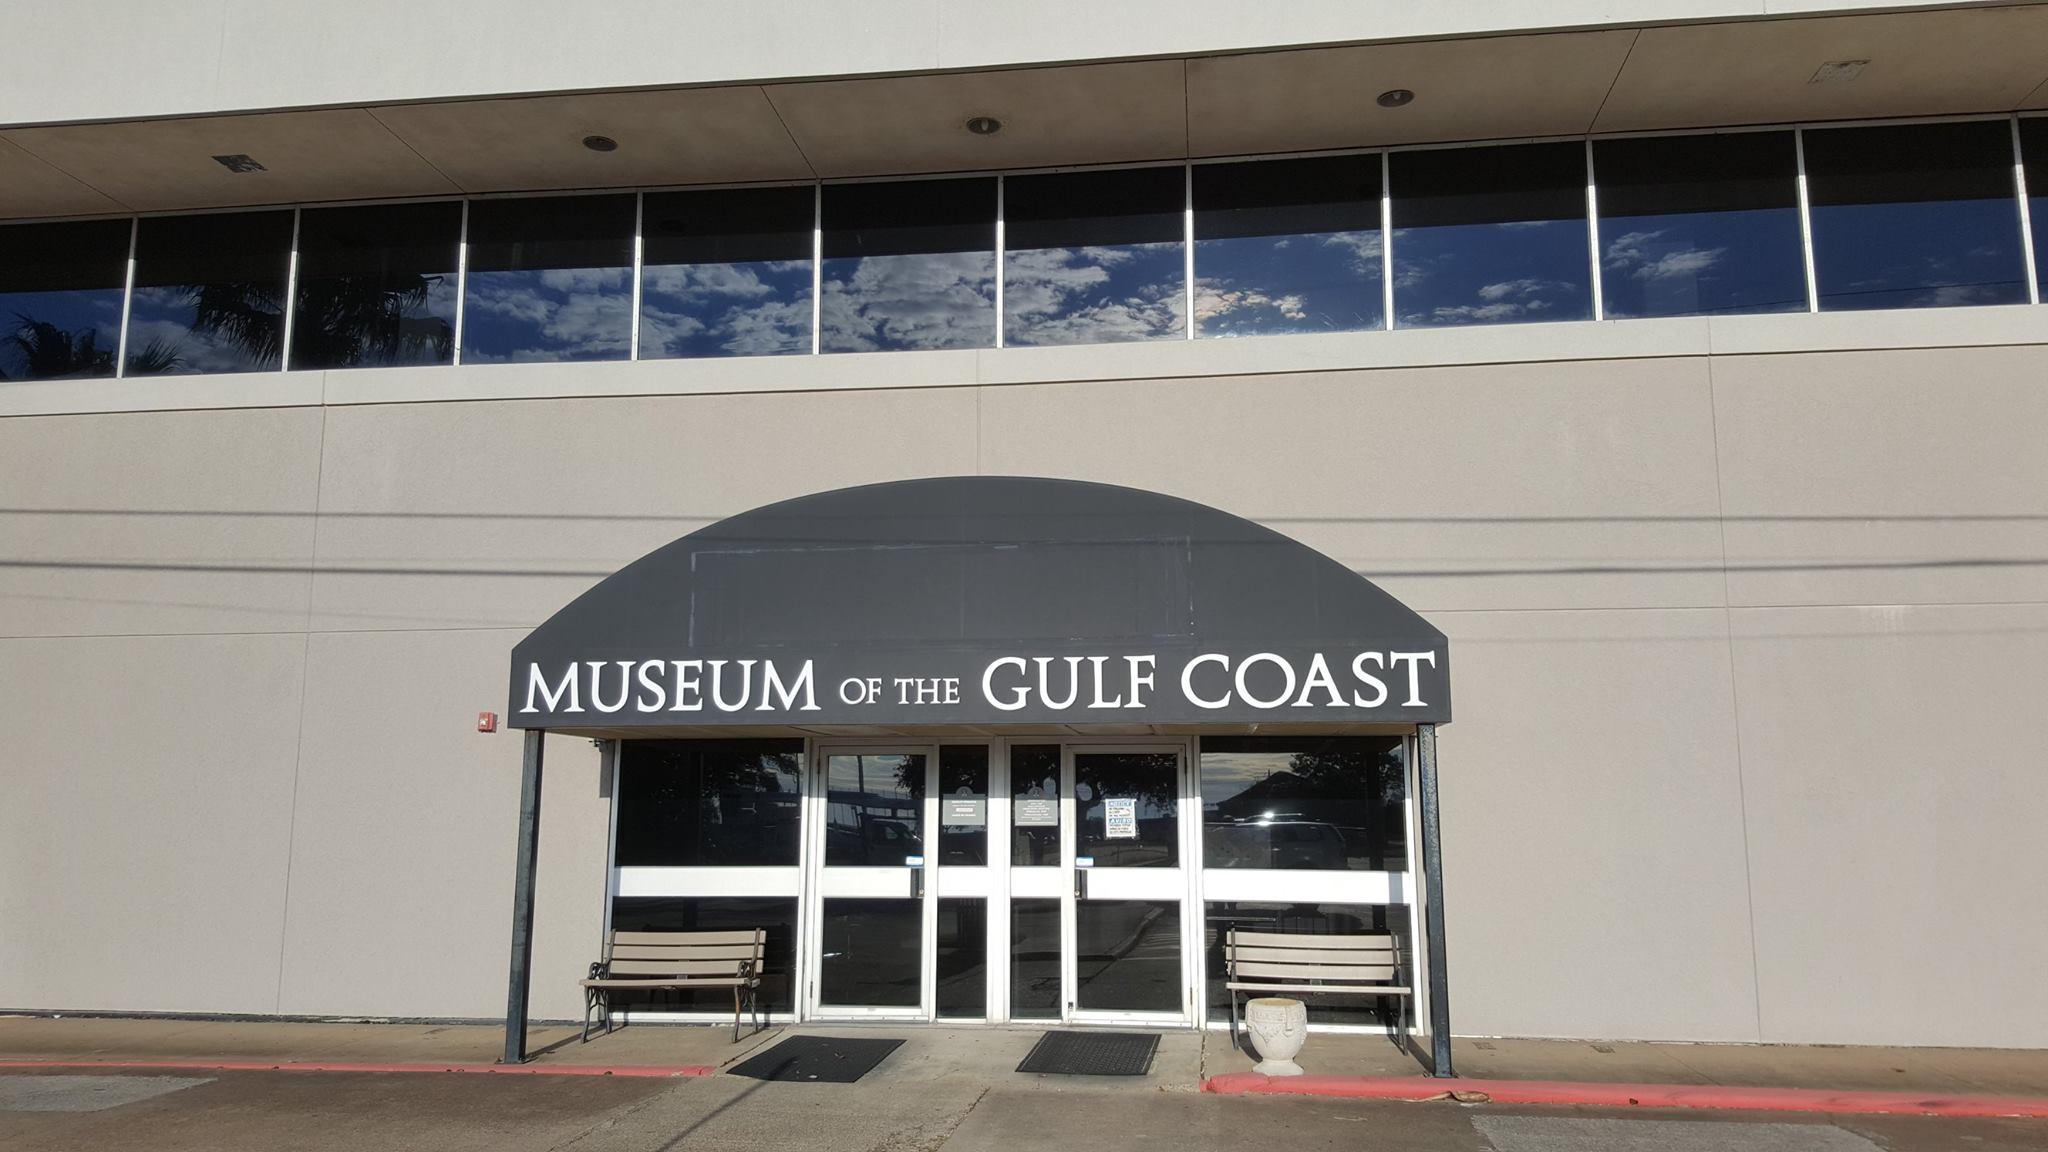 The Museum of the Gulf Coast was chartered in 1964 and preserves the history of the Texas/Louisiana Gulf coast region.